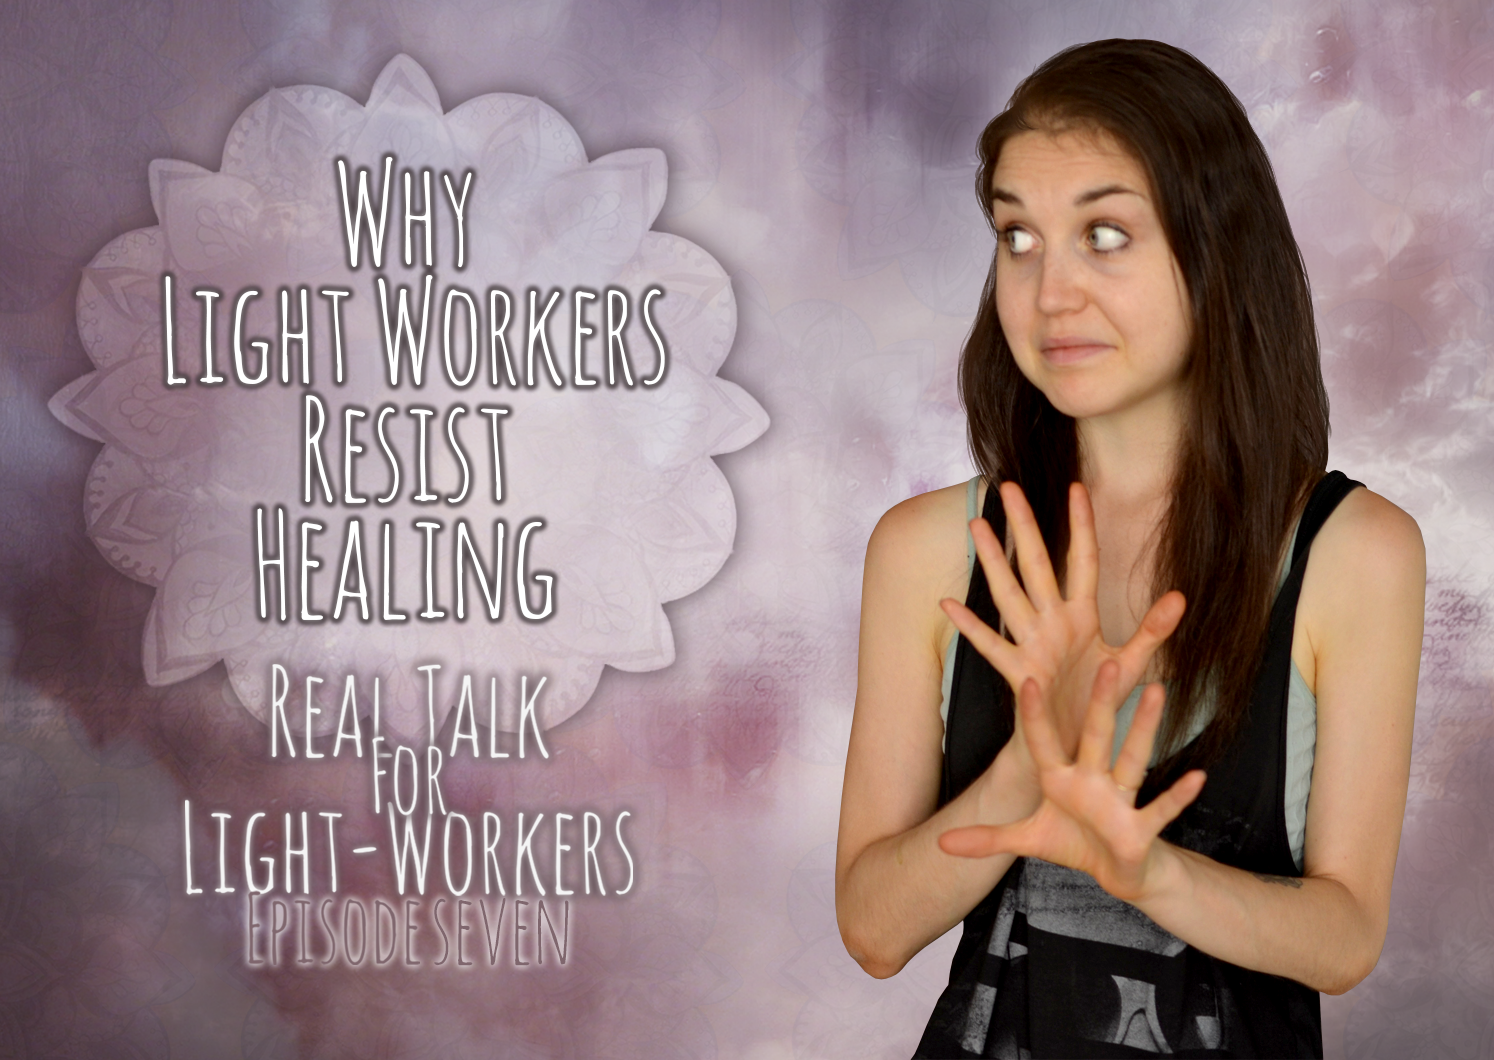 Real Talk For Light Workers Episode Seven: Why Light Workers Resist Healing Themselves: